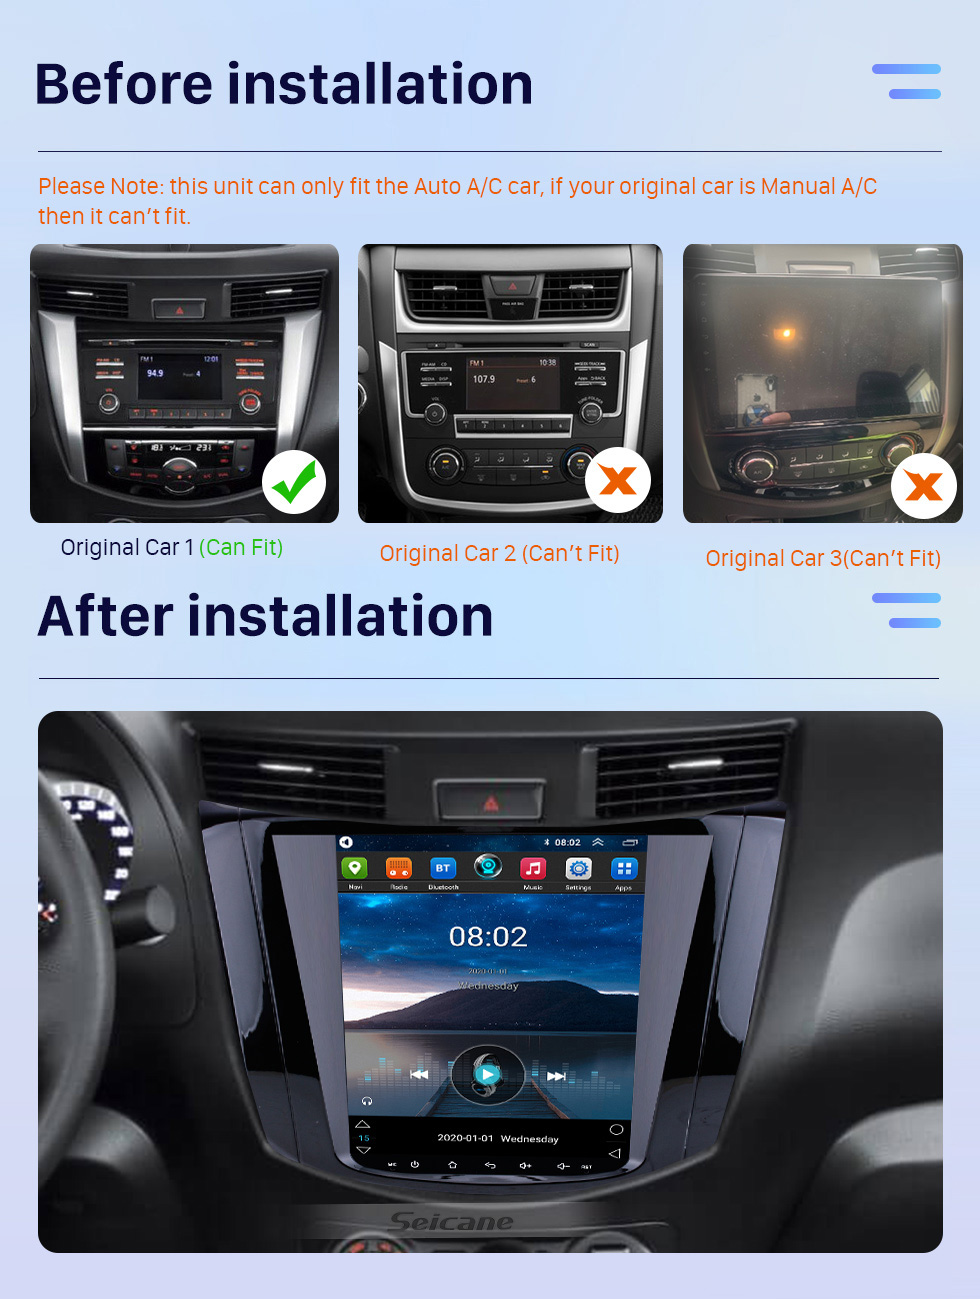 Seicane OEM HD Touchscreen 9.7 inch Android 10.0 Radio for 2018 Nissan NAVARA Terra Auto A/C with GPS Navi System Mirror link Bluetooth music WIFI support 3G OBD2 DVR SWC